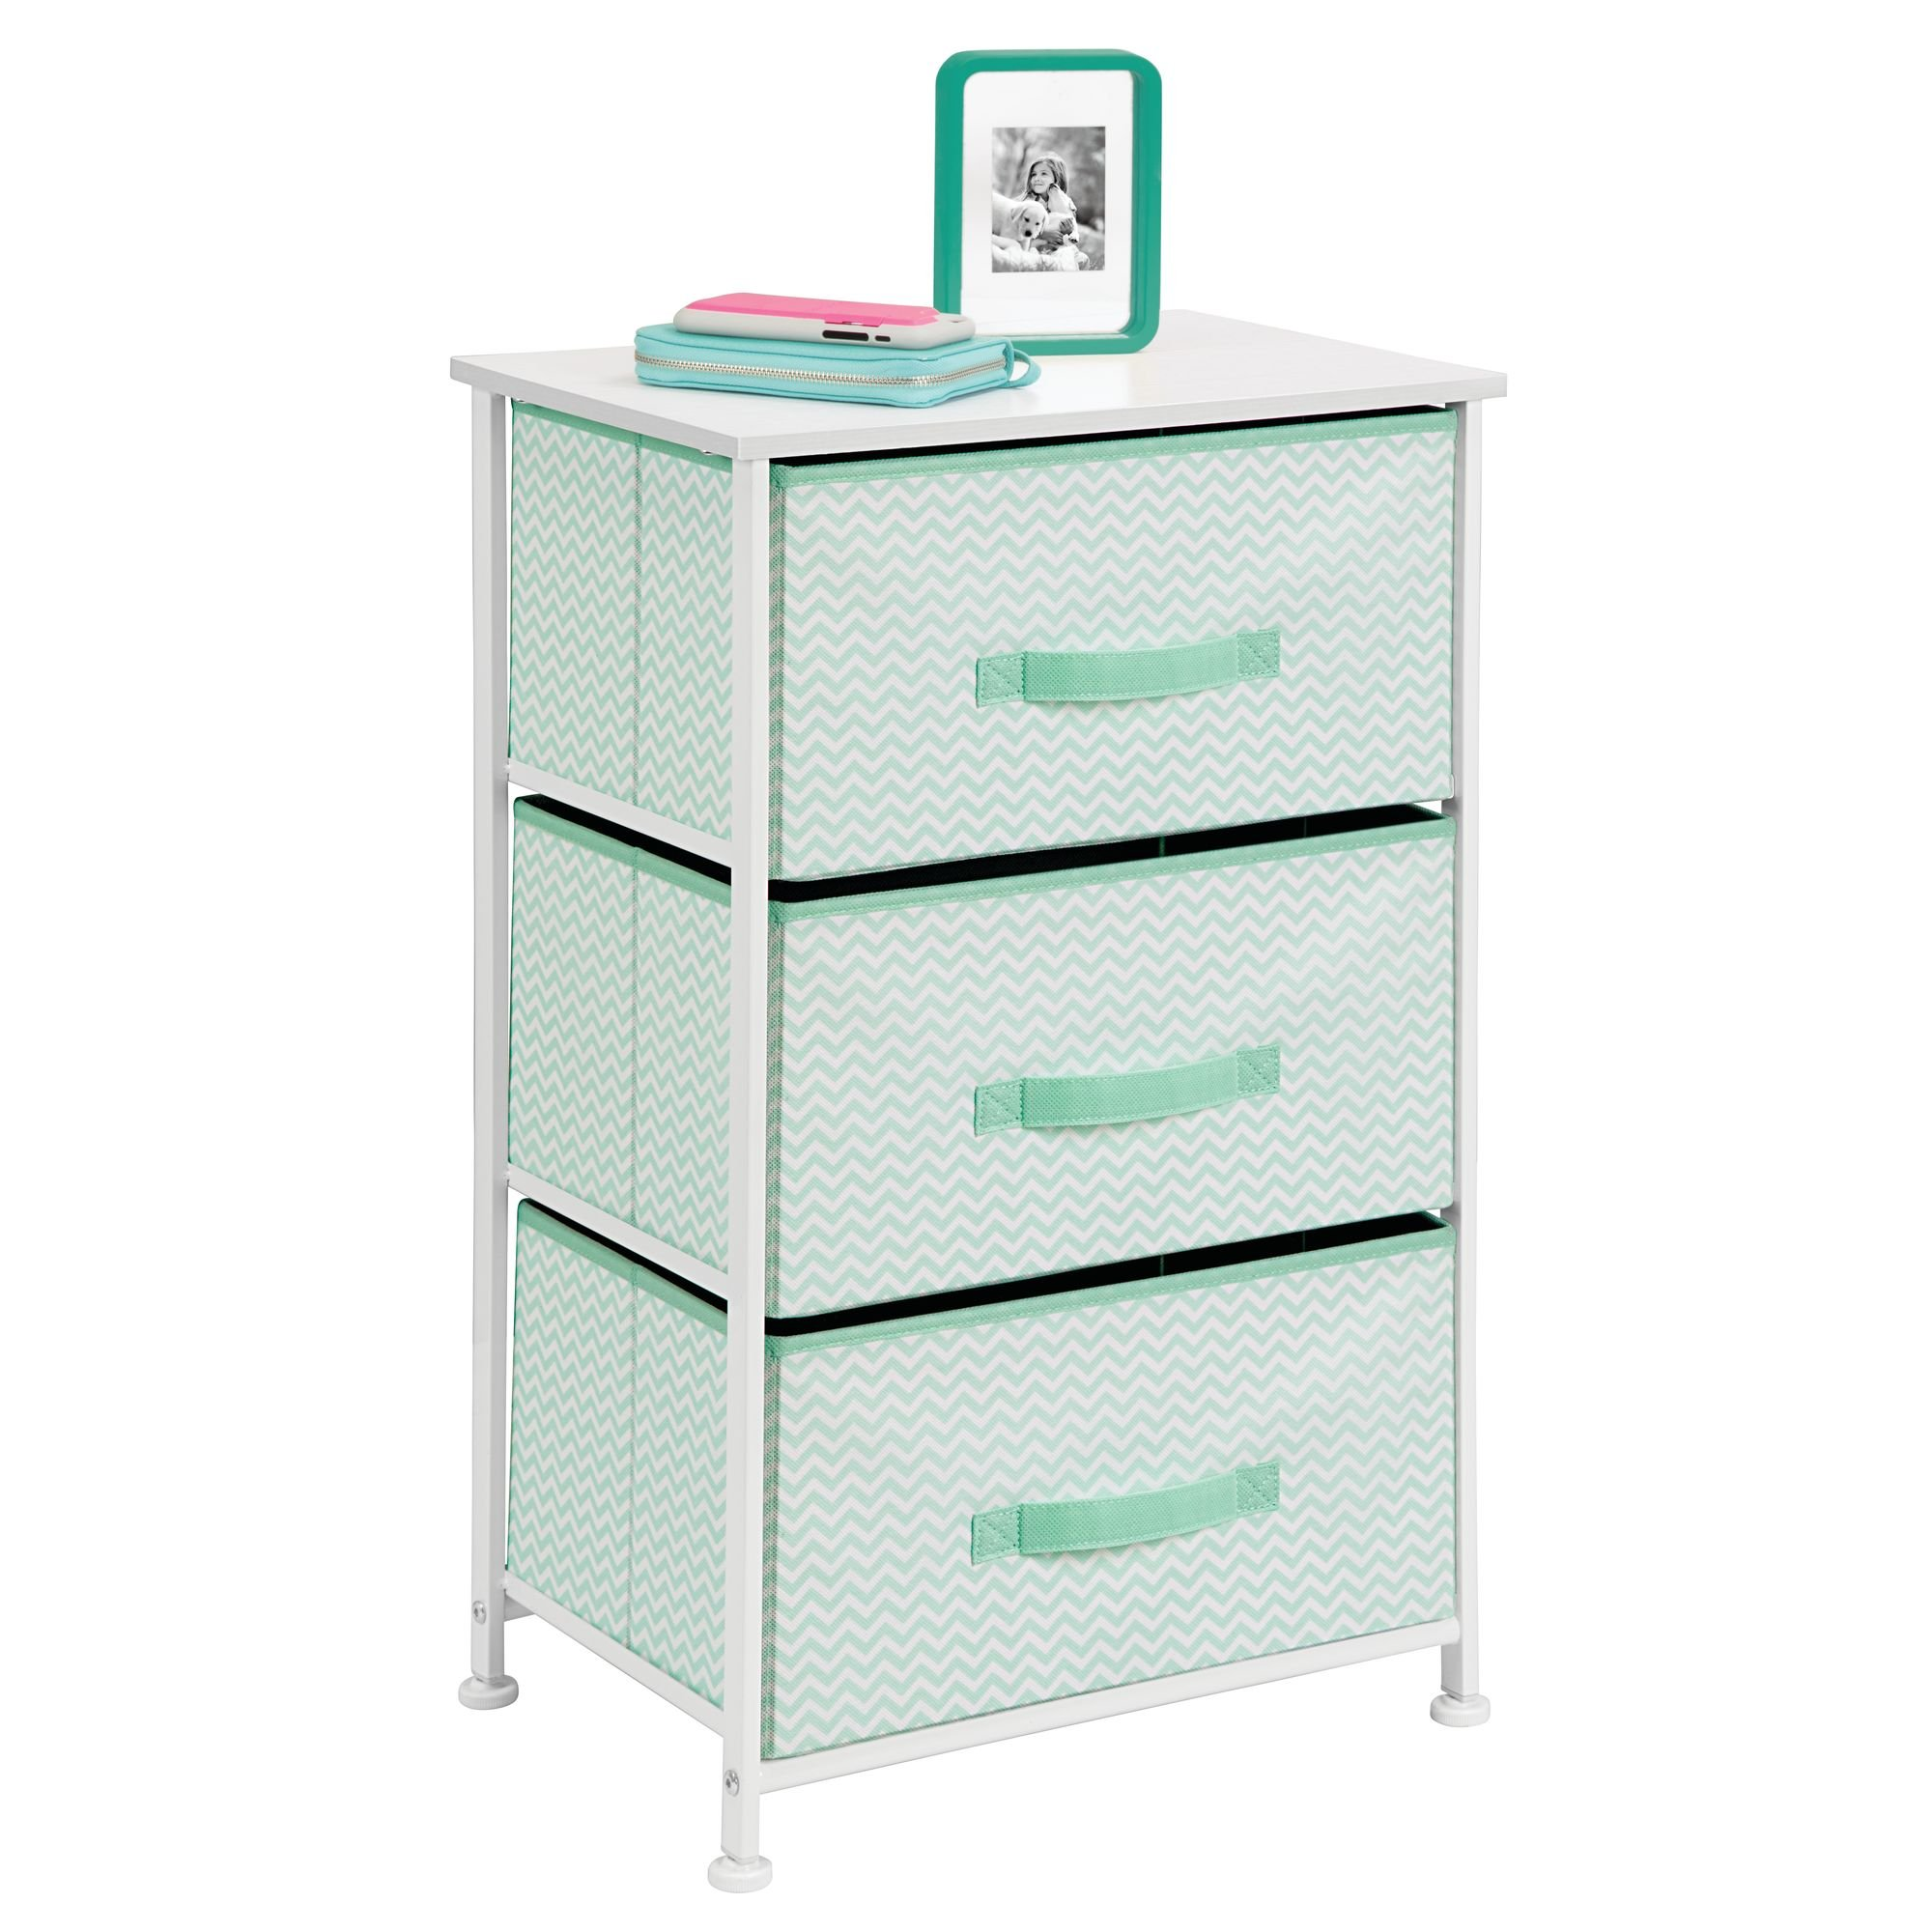 mDesign Vertical Dresser Storage Tower - Sturdy Steel Frame, Wood Top, Easy Pull Fabric Bins - Organizer Unit for Bedroom, Hallway, Entryway, Closets - Chevron Print - 3 Drawers, Mint/White by mDesign (Image #3)